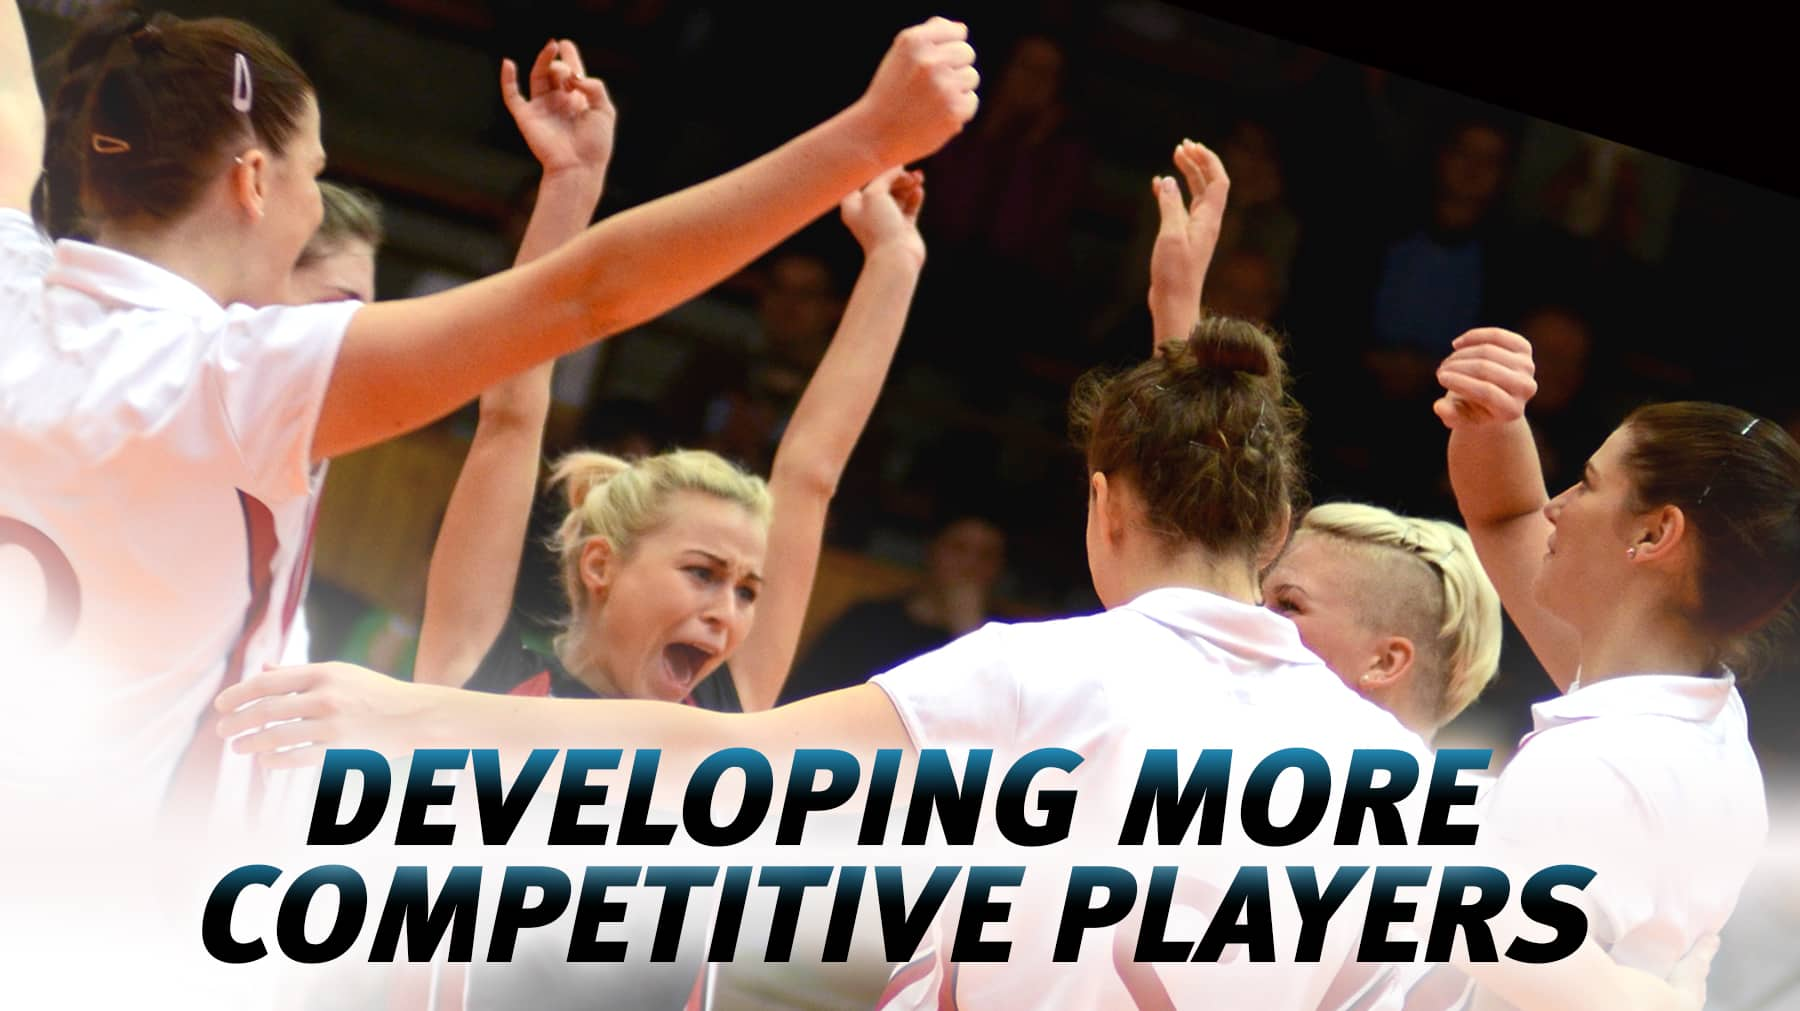 Dave Shoji: Developing more competitive players